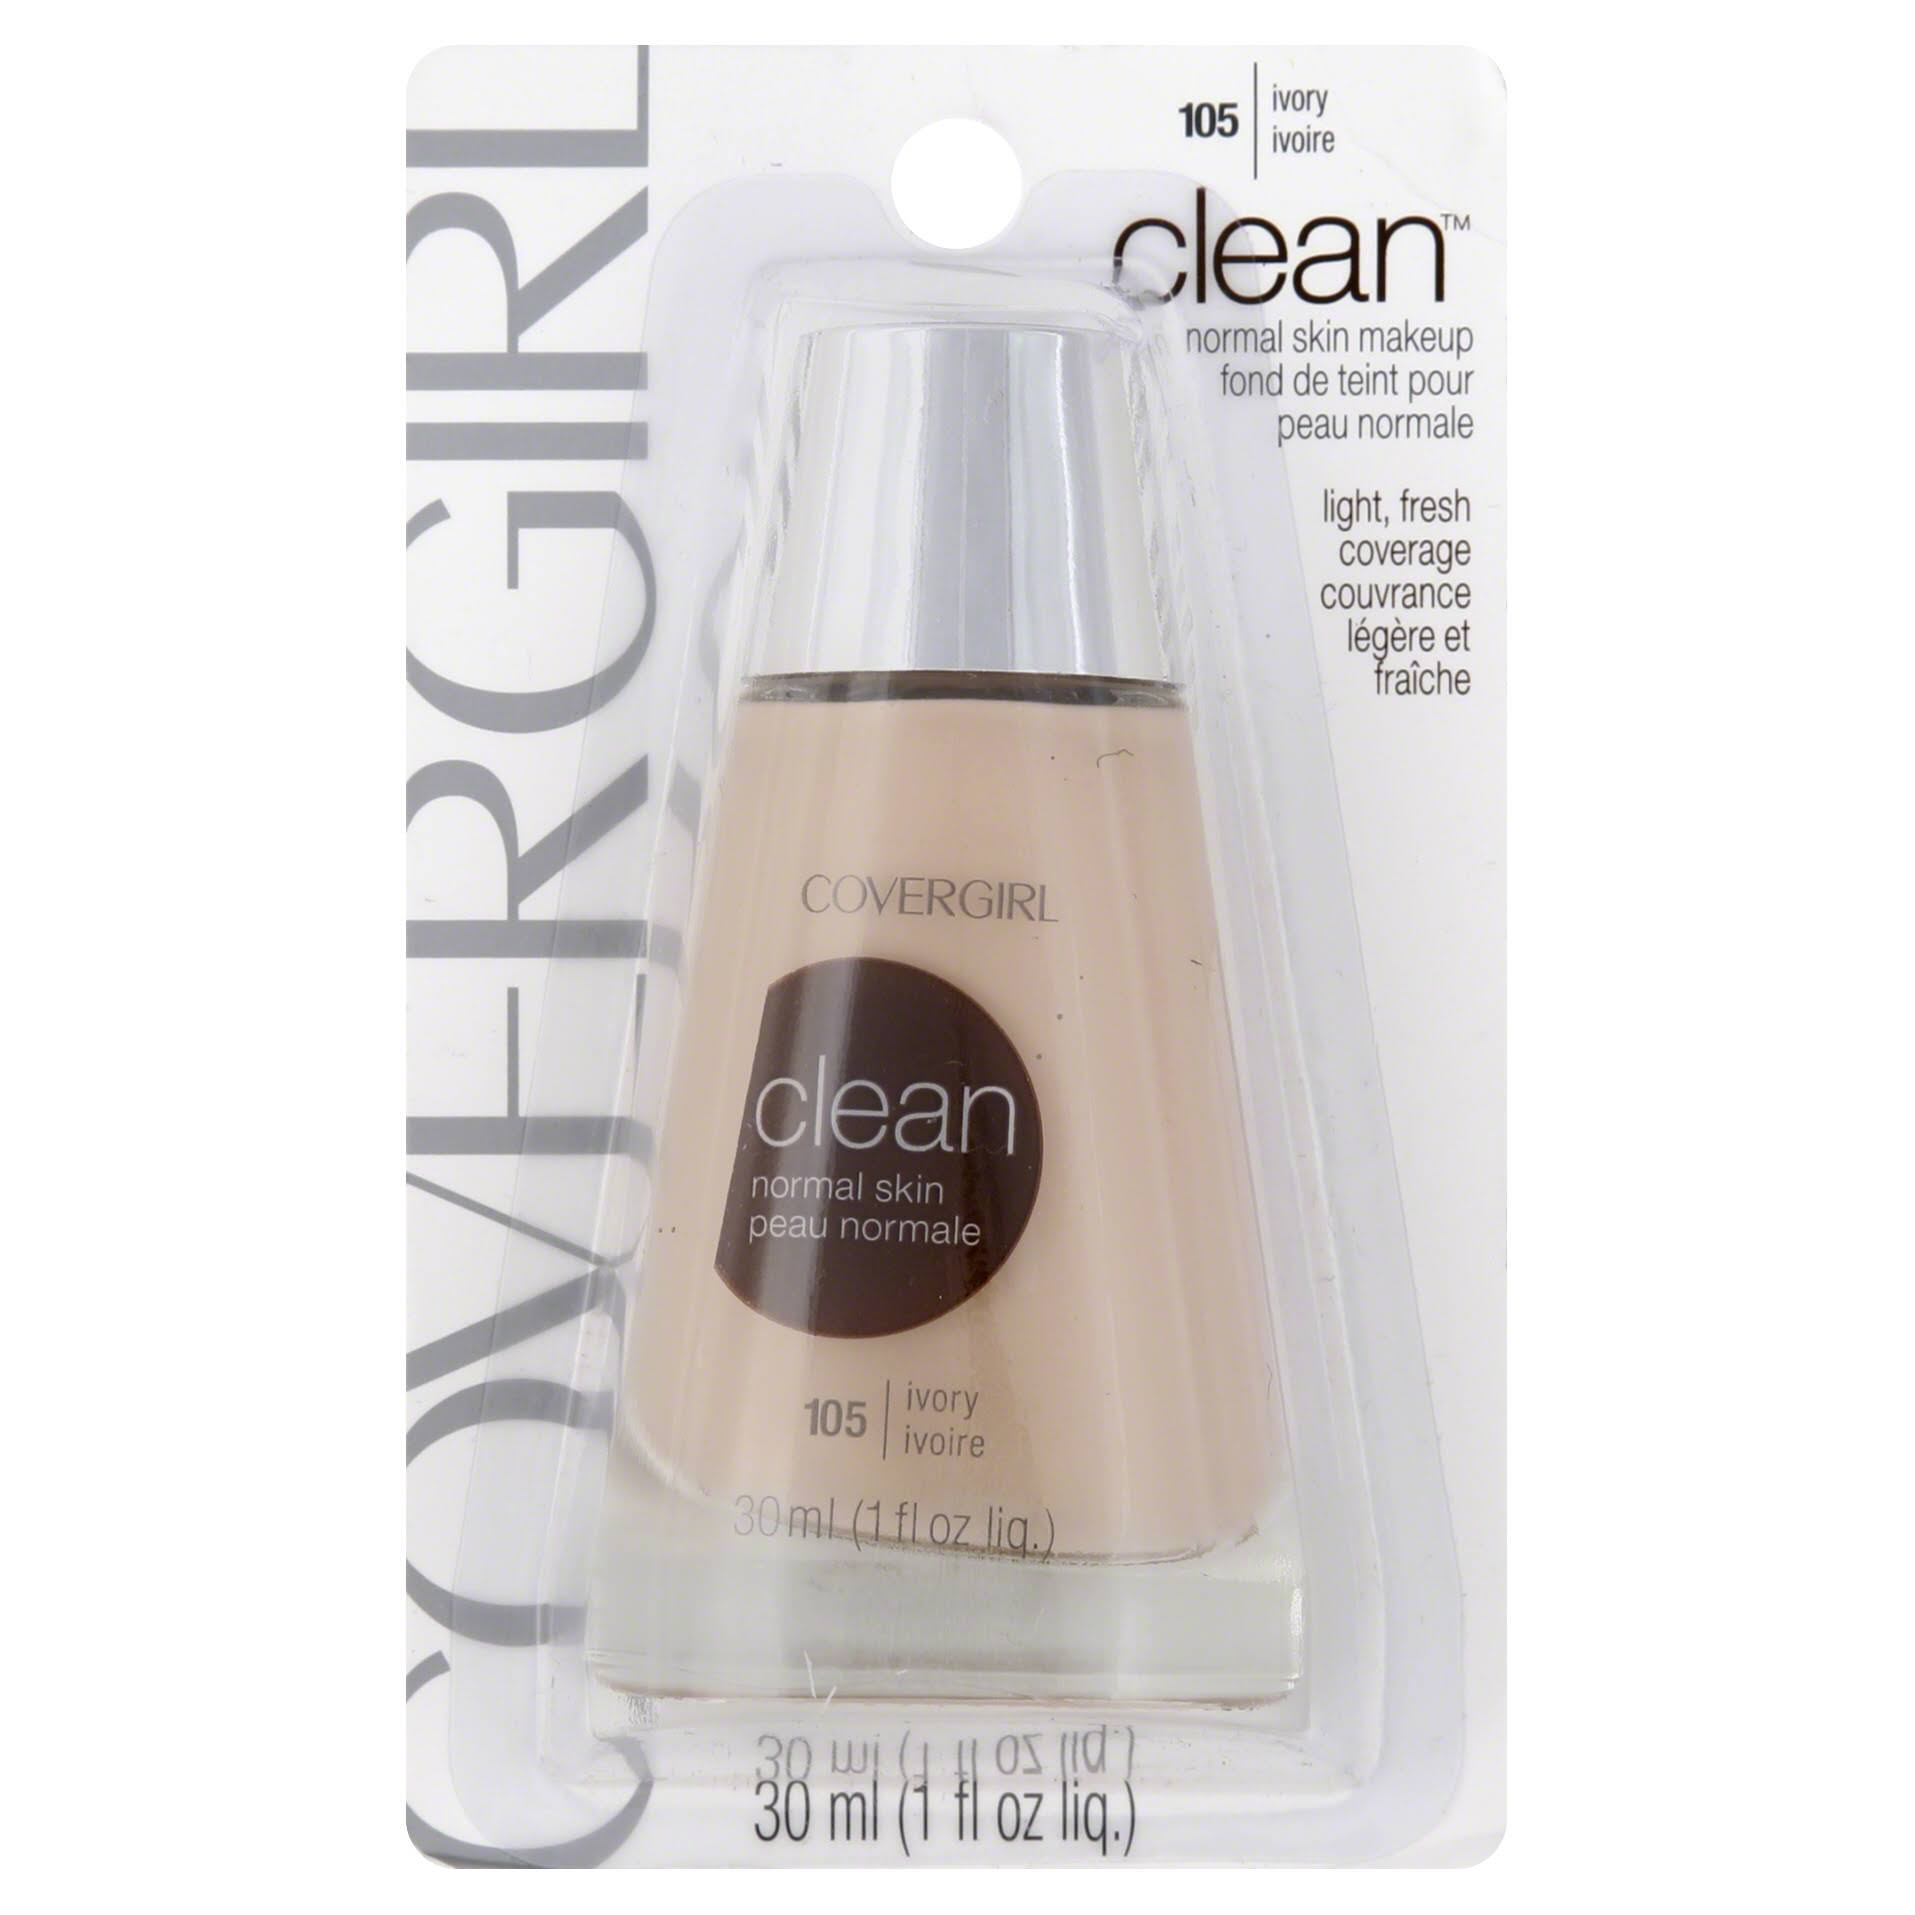 CoverGirl Clean Liquid Foundation, Normal Skin, Ivory 105 - 1 fl oz